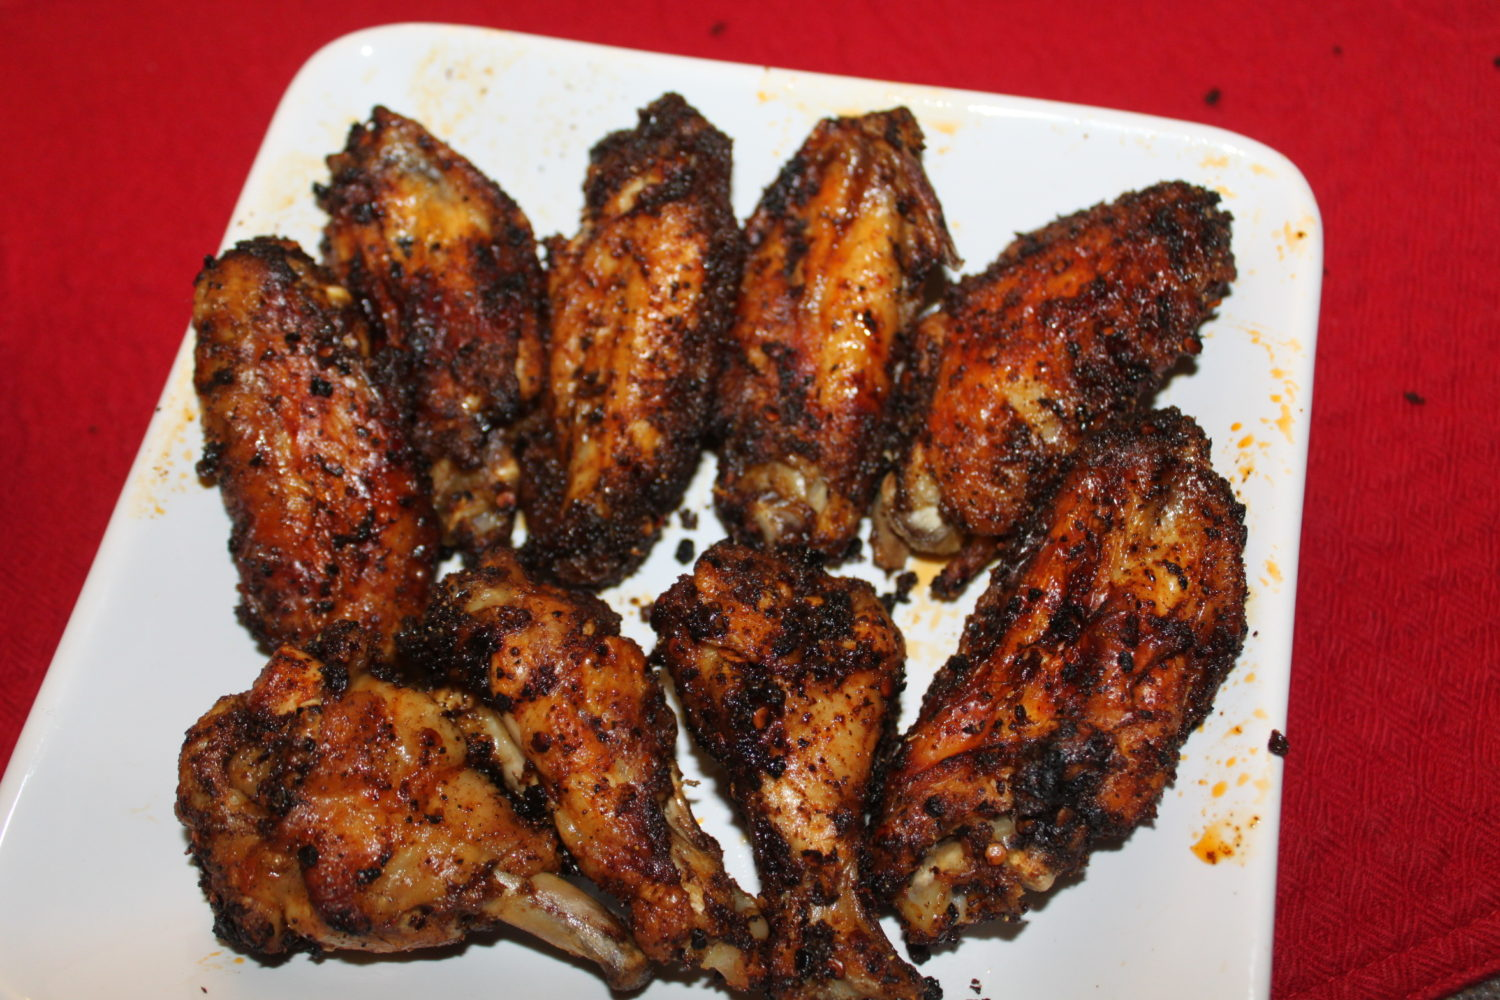 BAKED Chicken Wings' Recipe, With Chipotle Dry Rub